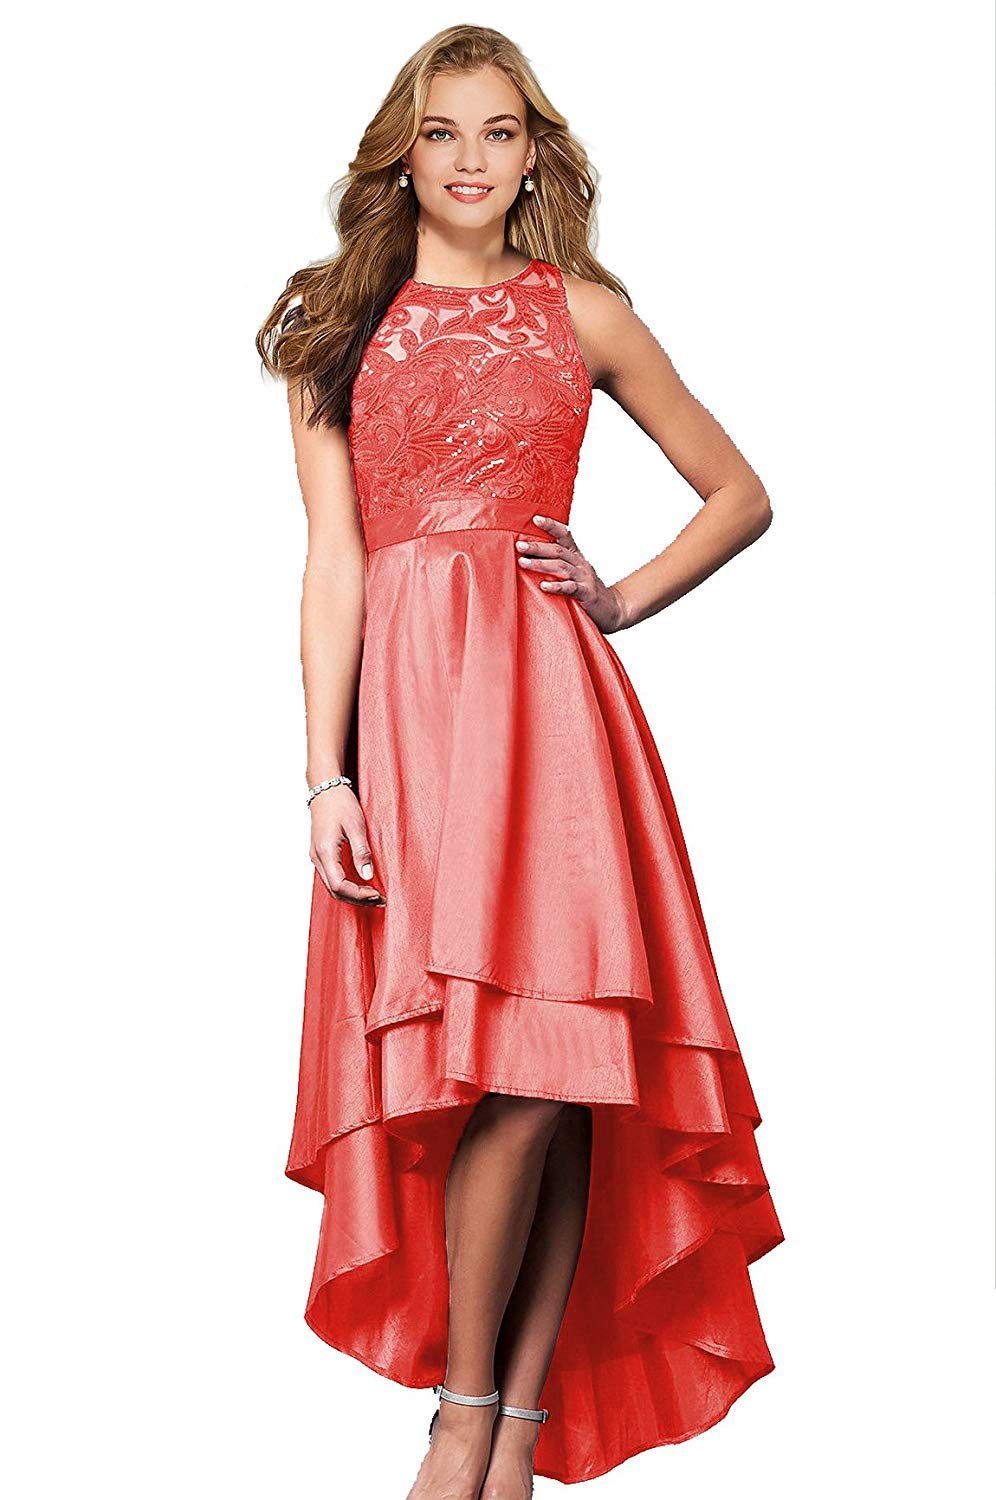 8adffdccb8 ... Lace Bridesmaid Dresses High Low Satin Prom Dress Evening Gowns Formal  B080.   